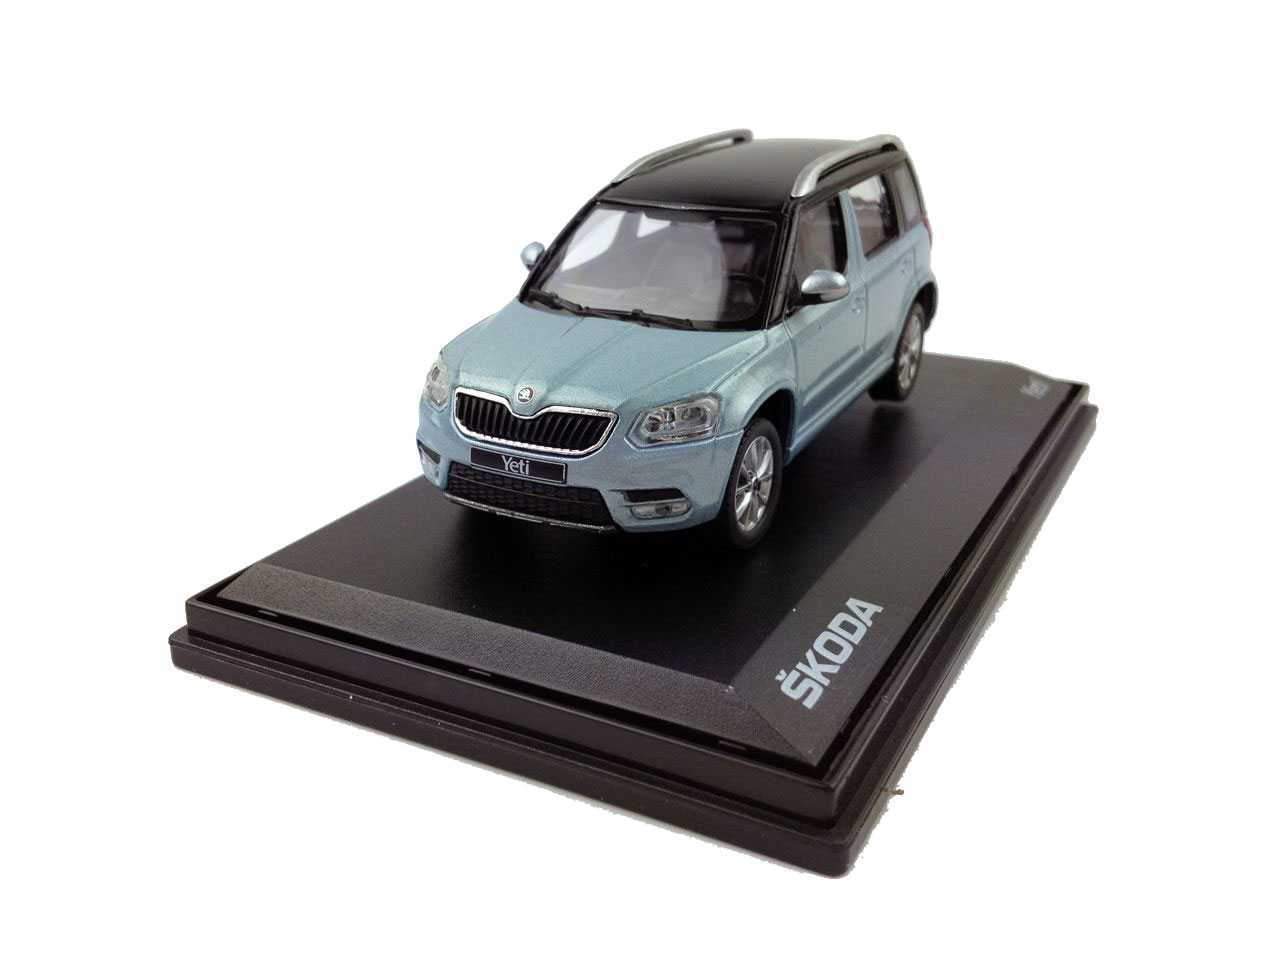 skoda yeti 1 43 scale diecast model car paudi model. Black Bedroom Furniture Sets. Home Design Ideas